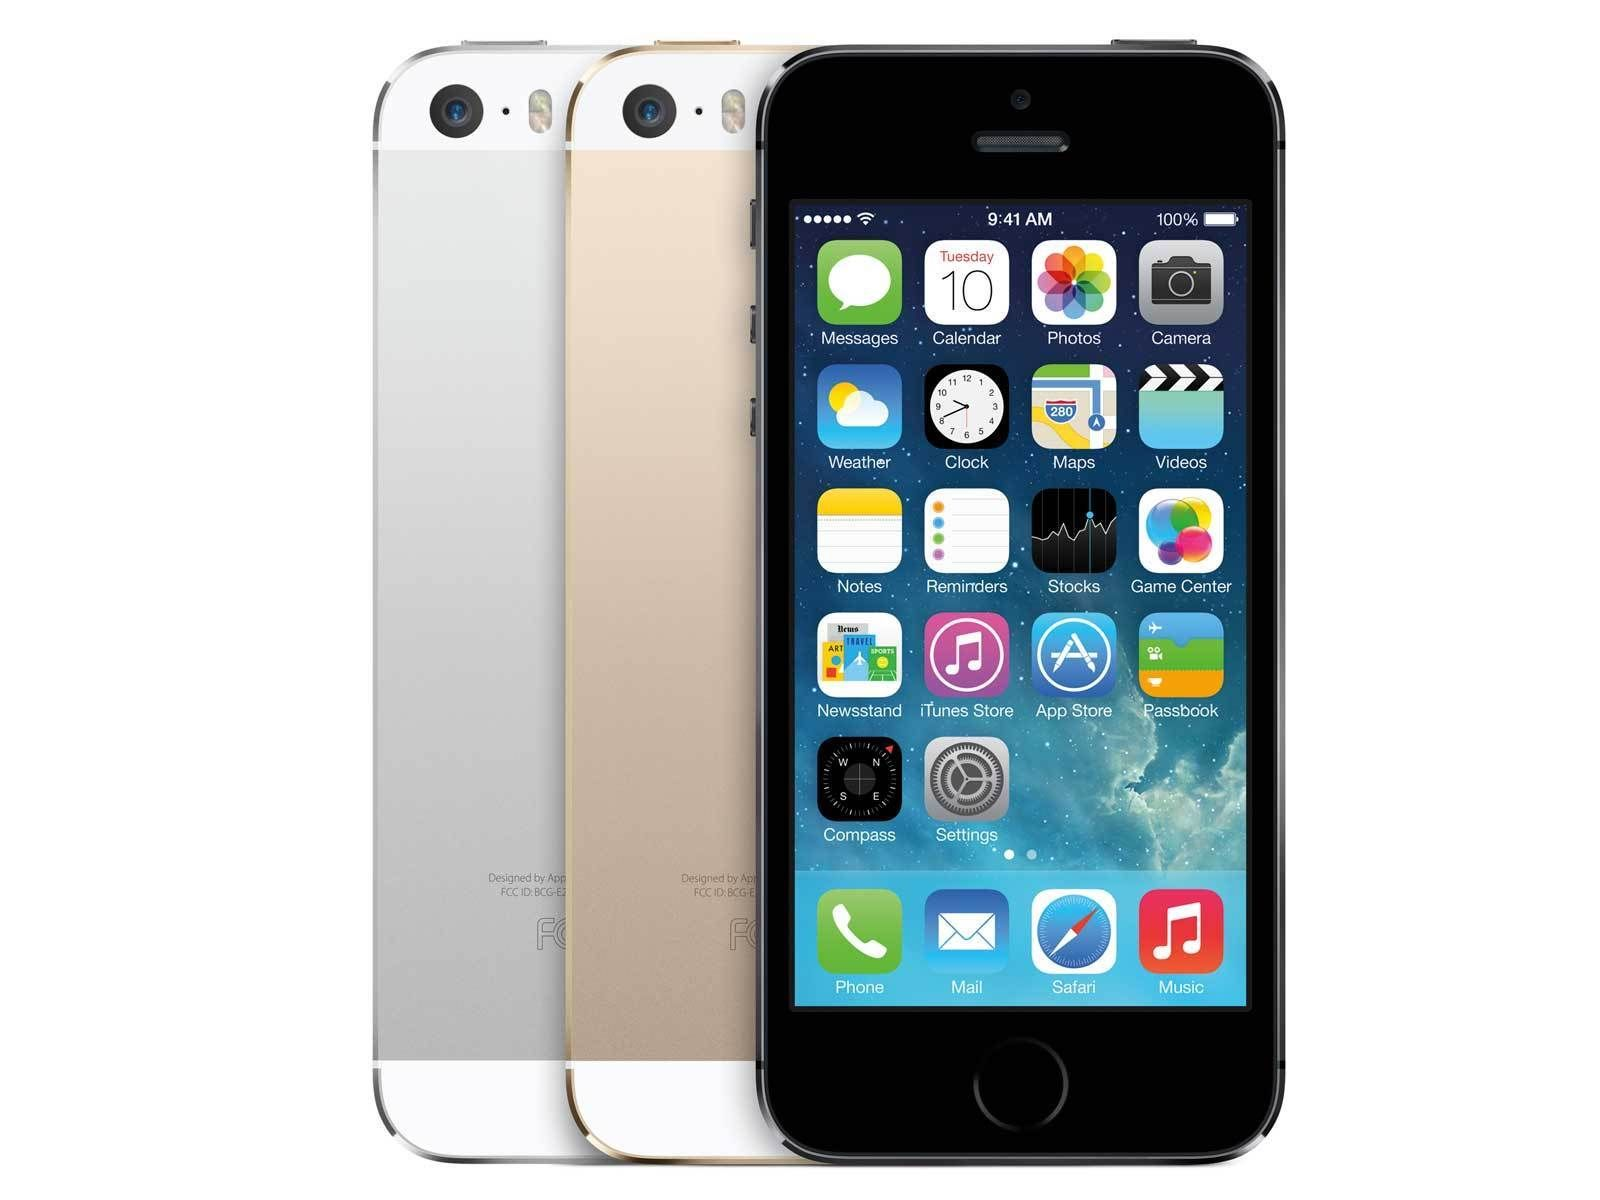 Details about Apple iPhone 5s A1533 16gb GSM Unlocked 4G LTE